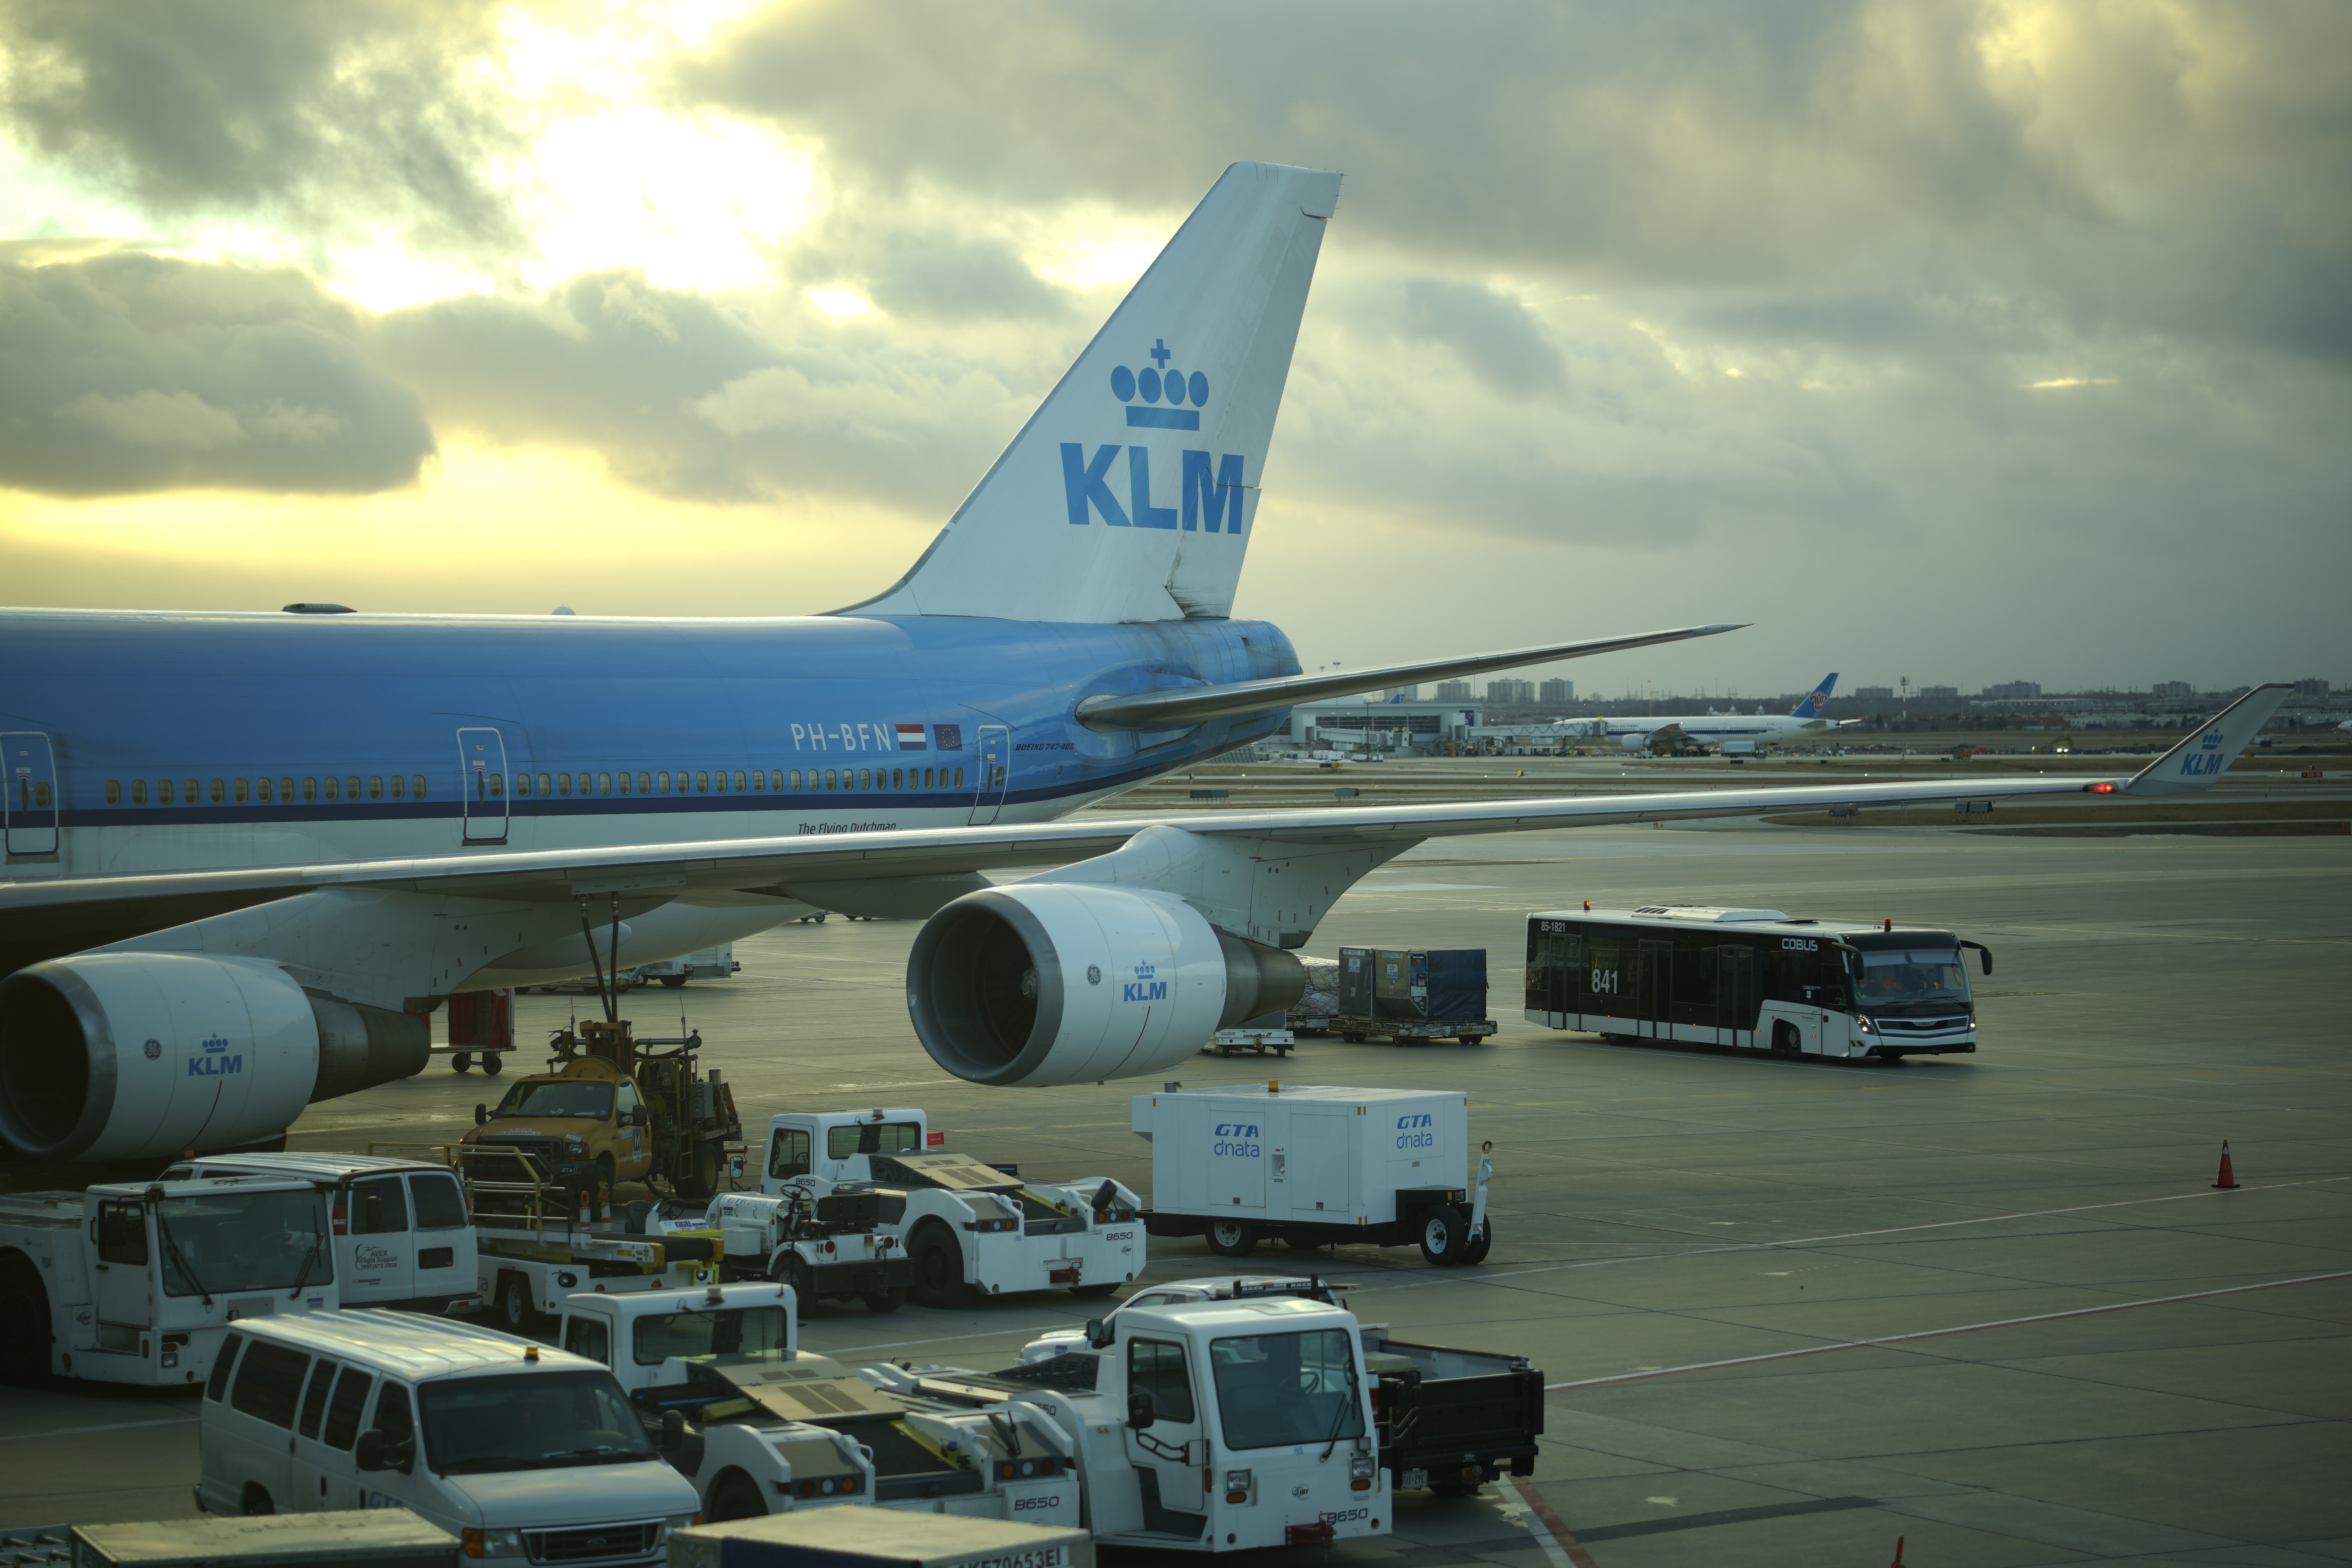 white and blue KLM airplane